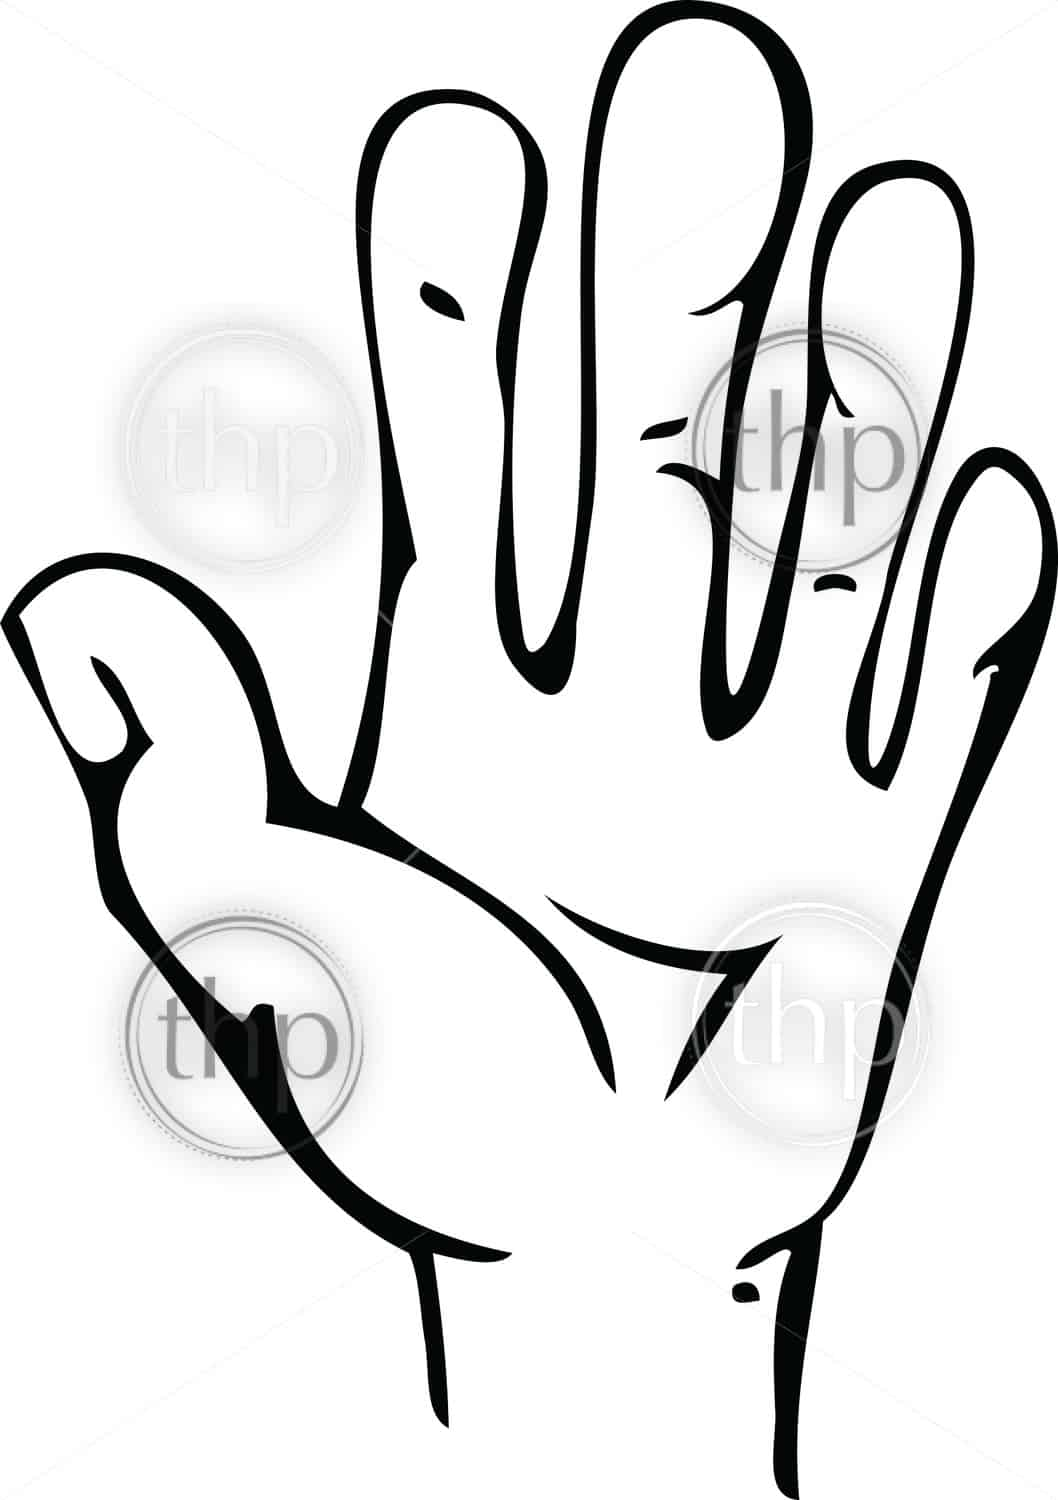 Cartoon line drawing of human hand with open palm